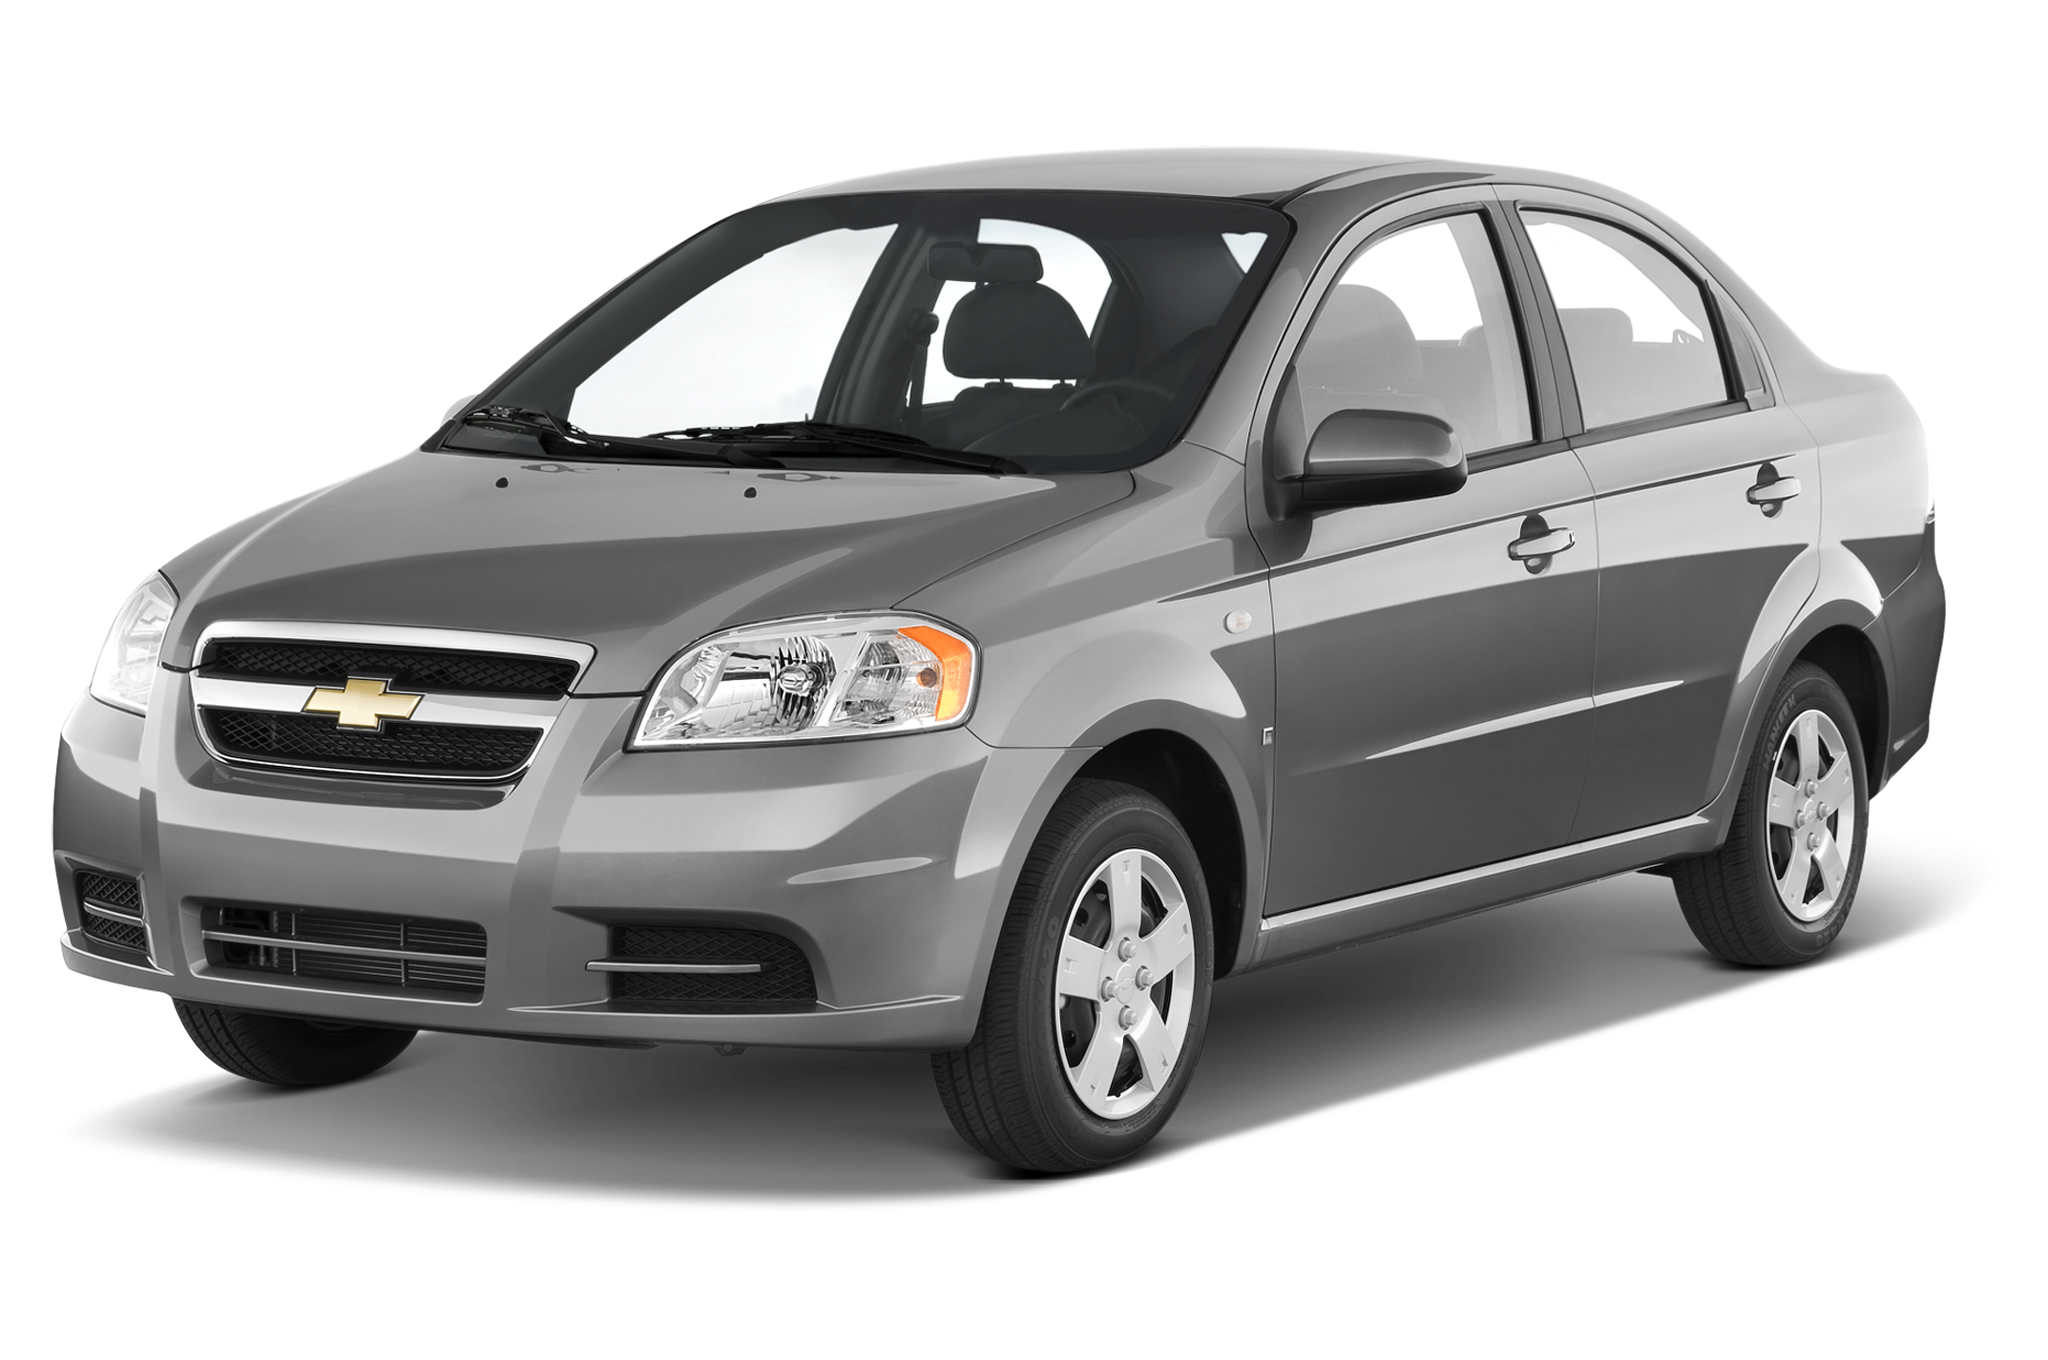 Car factory clipart vector transparent Chevrolet Aveo PNG Clipart - Download free images in PNG vector transparent